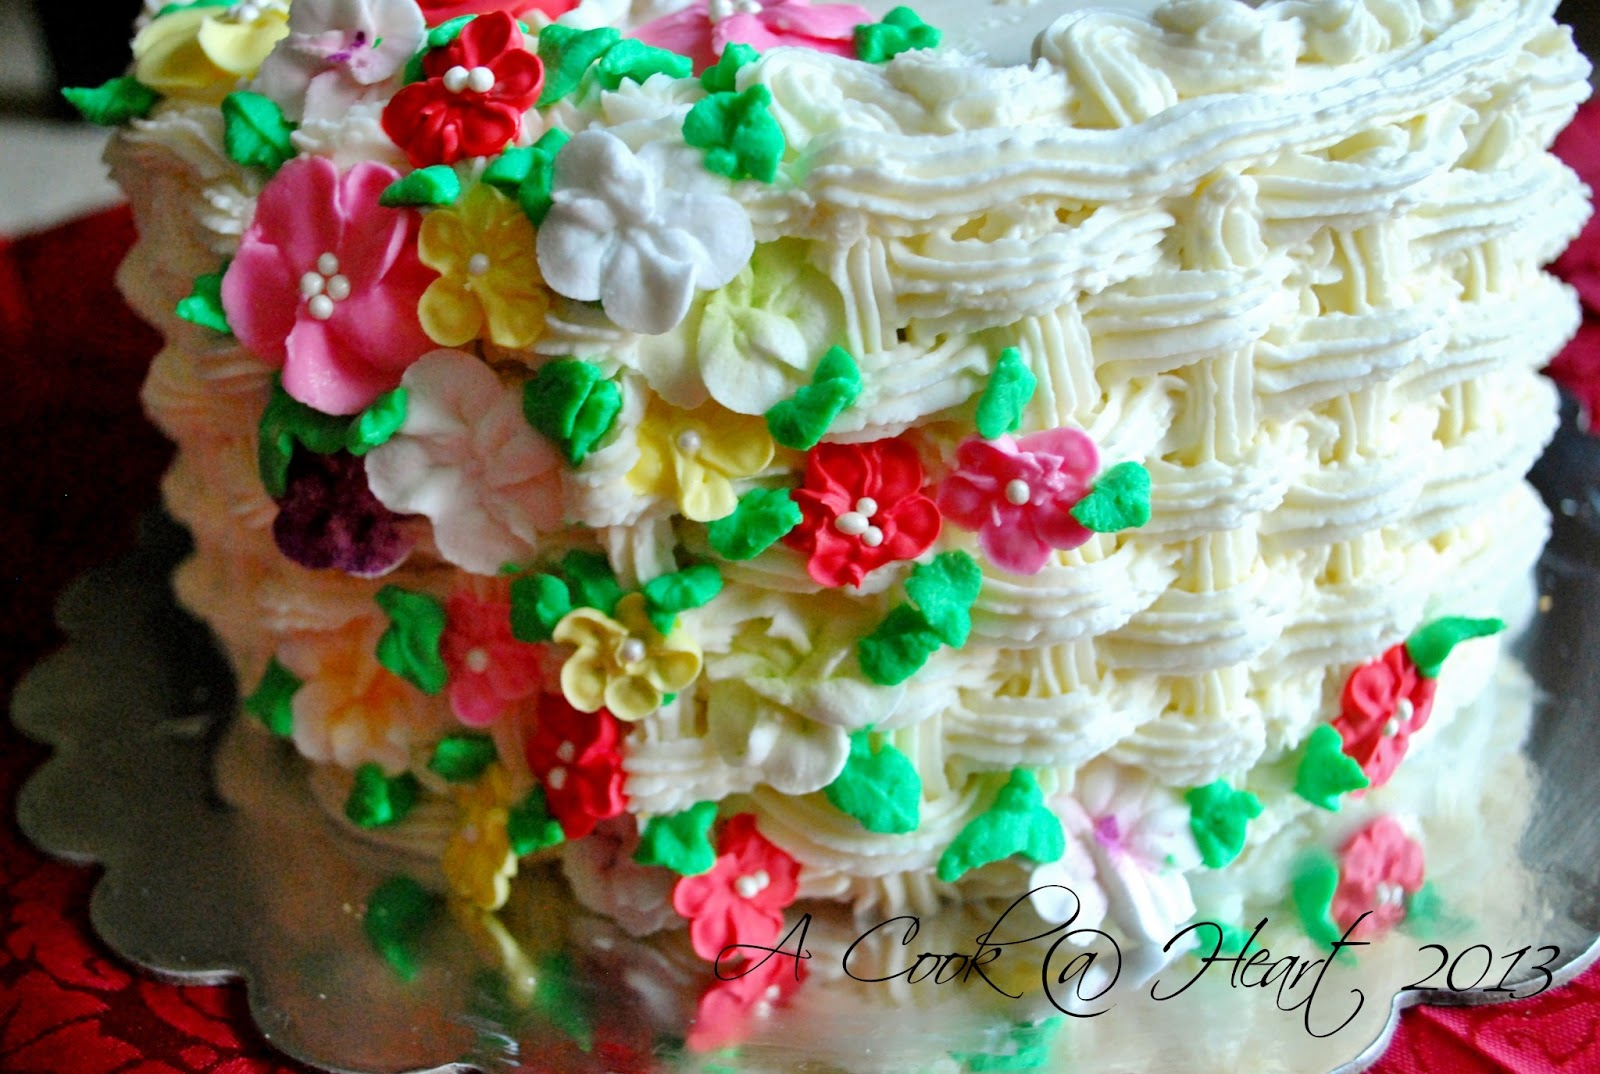 How To Make A Basket Of Flowers Cake : A cook heart basket cake of flowers